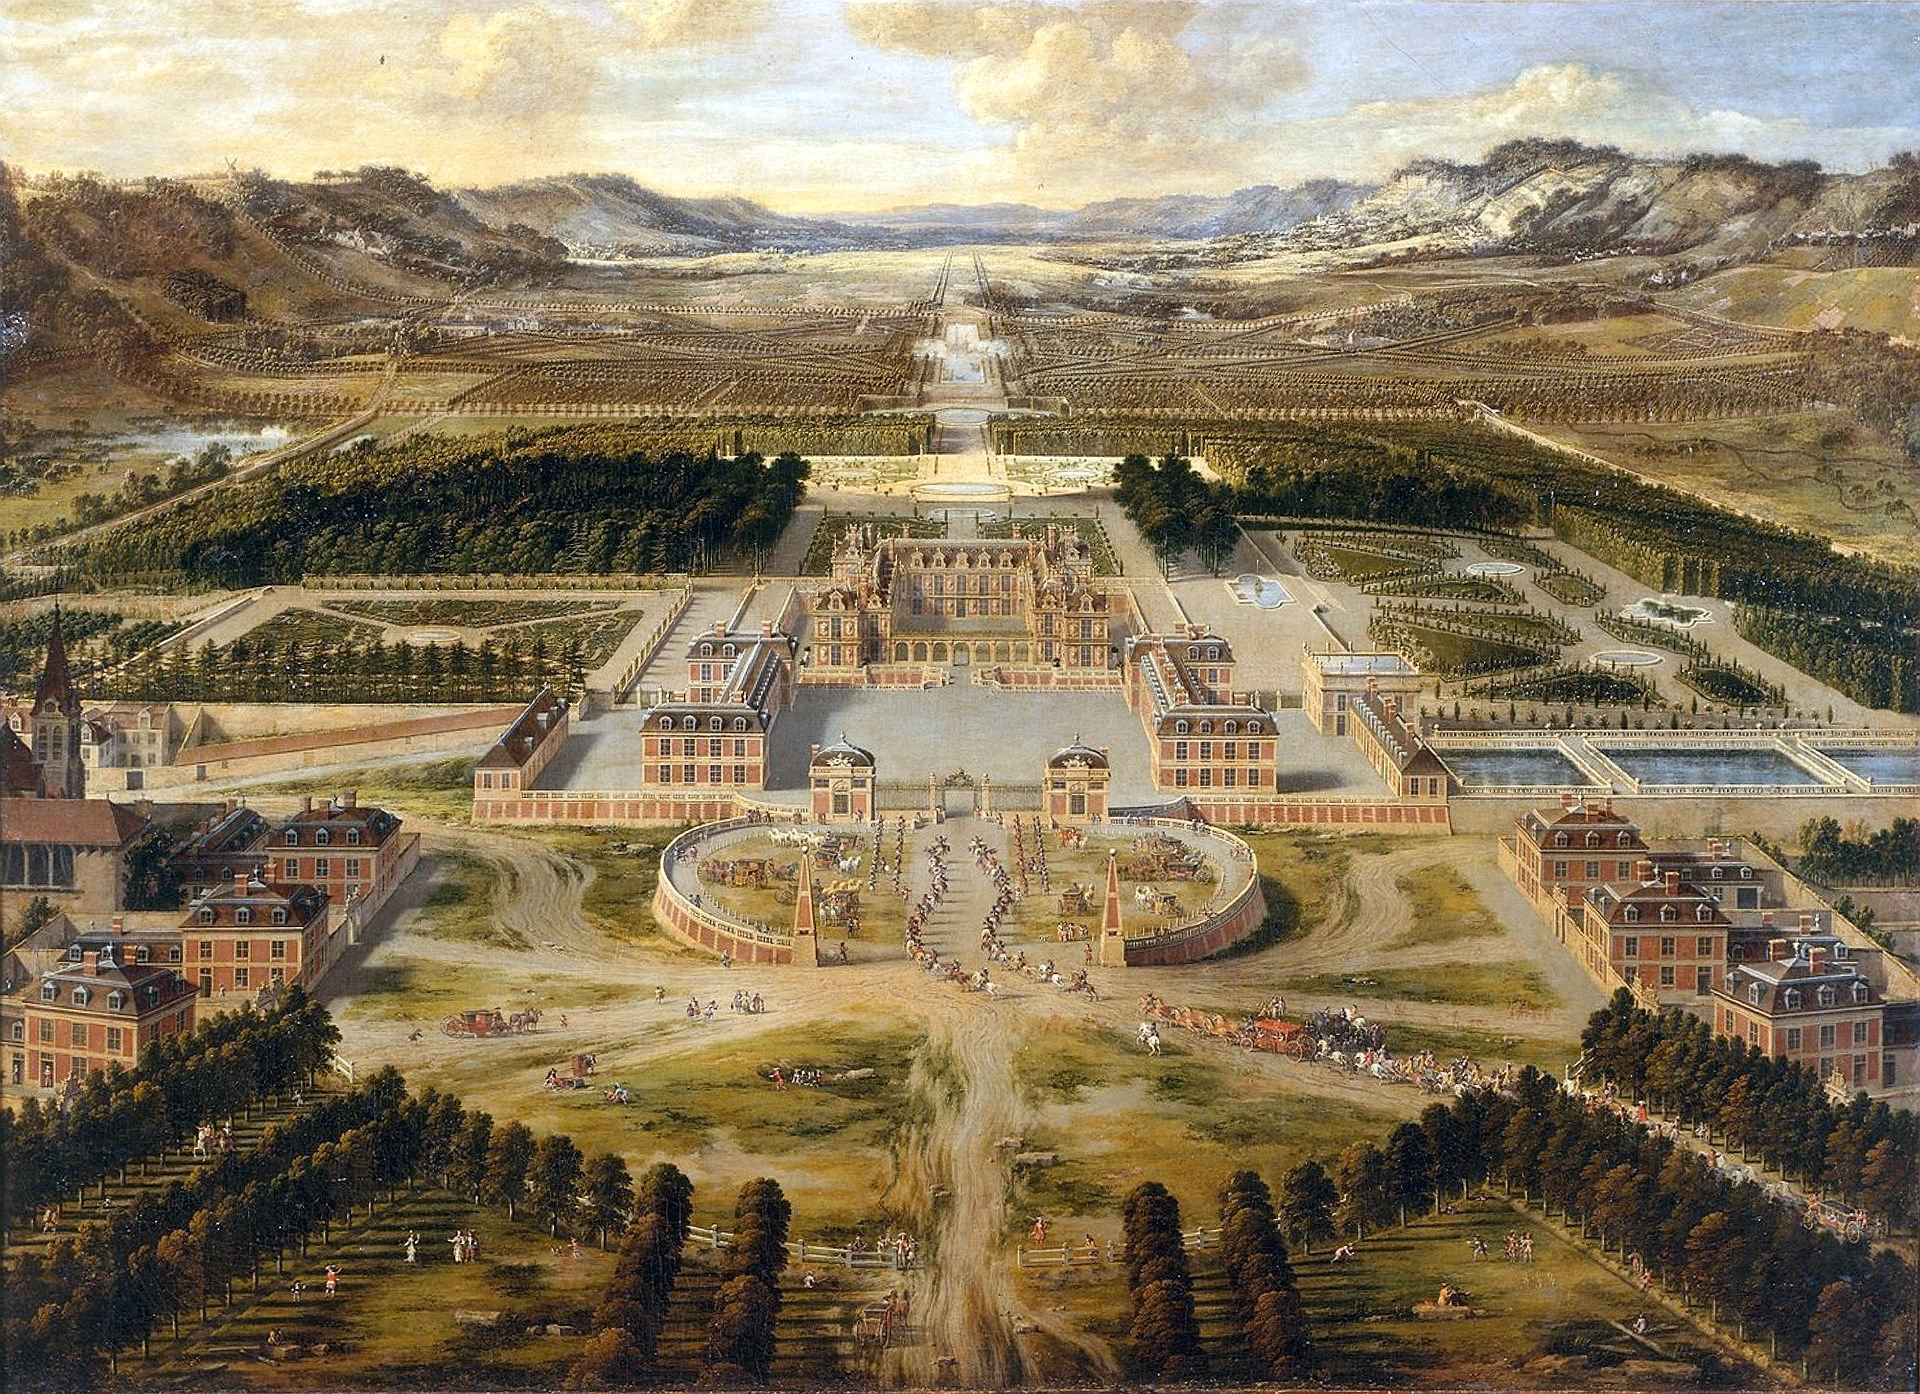 CHATEAU de VERSAILLES palace france french building painting